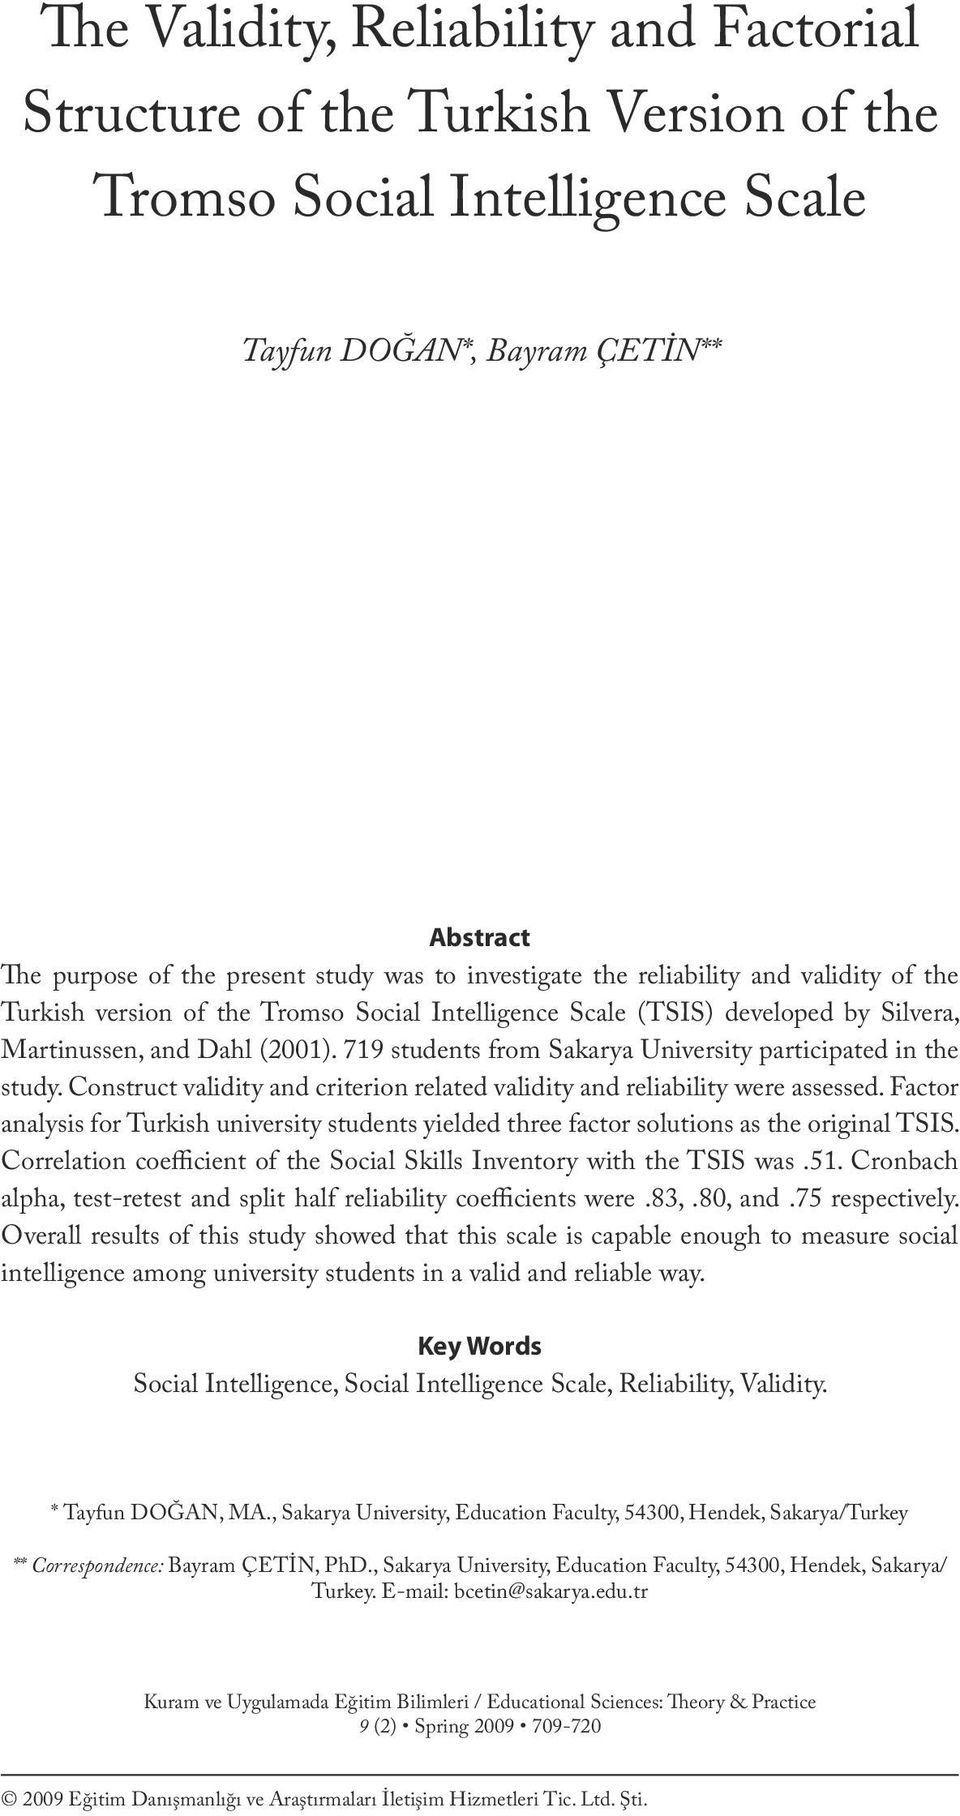 investigate the reliability and validity of the Turkish version of the Tromso Social Intelligence Scale (TSIS) developed by Silvera, Martinussen, and Dahl (2001).